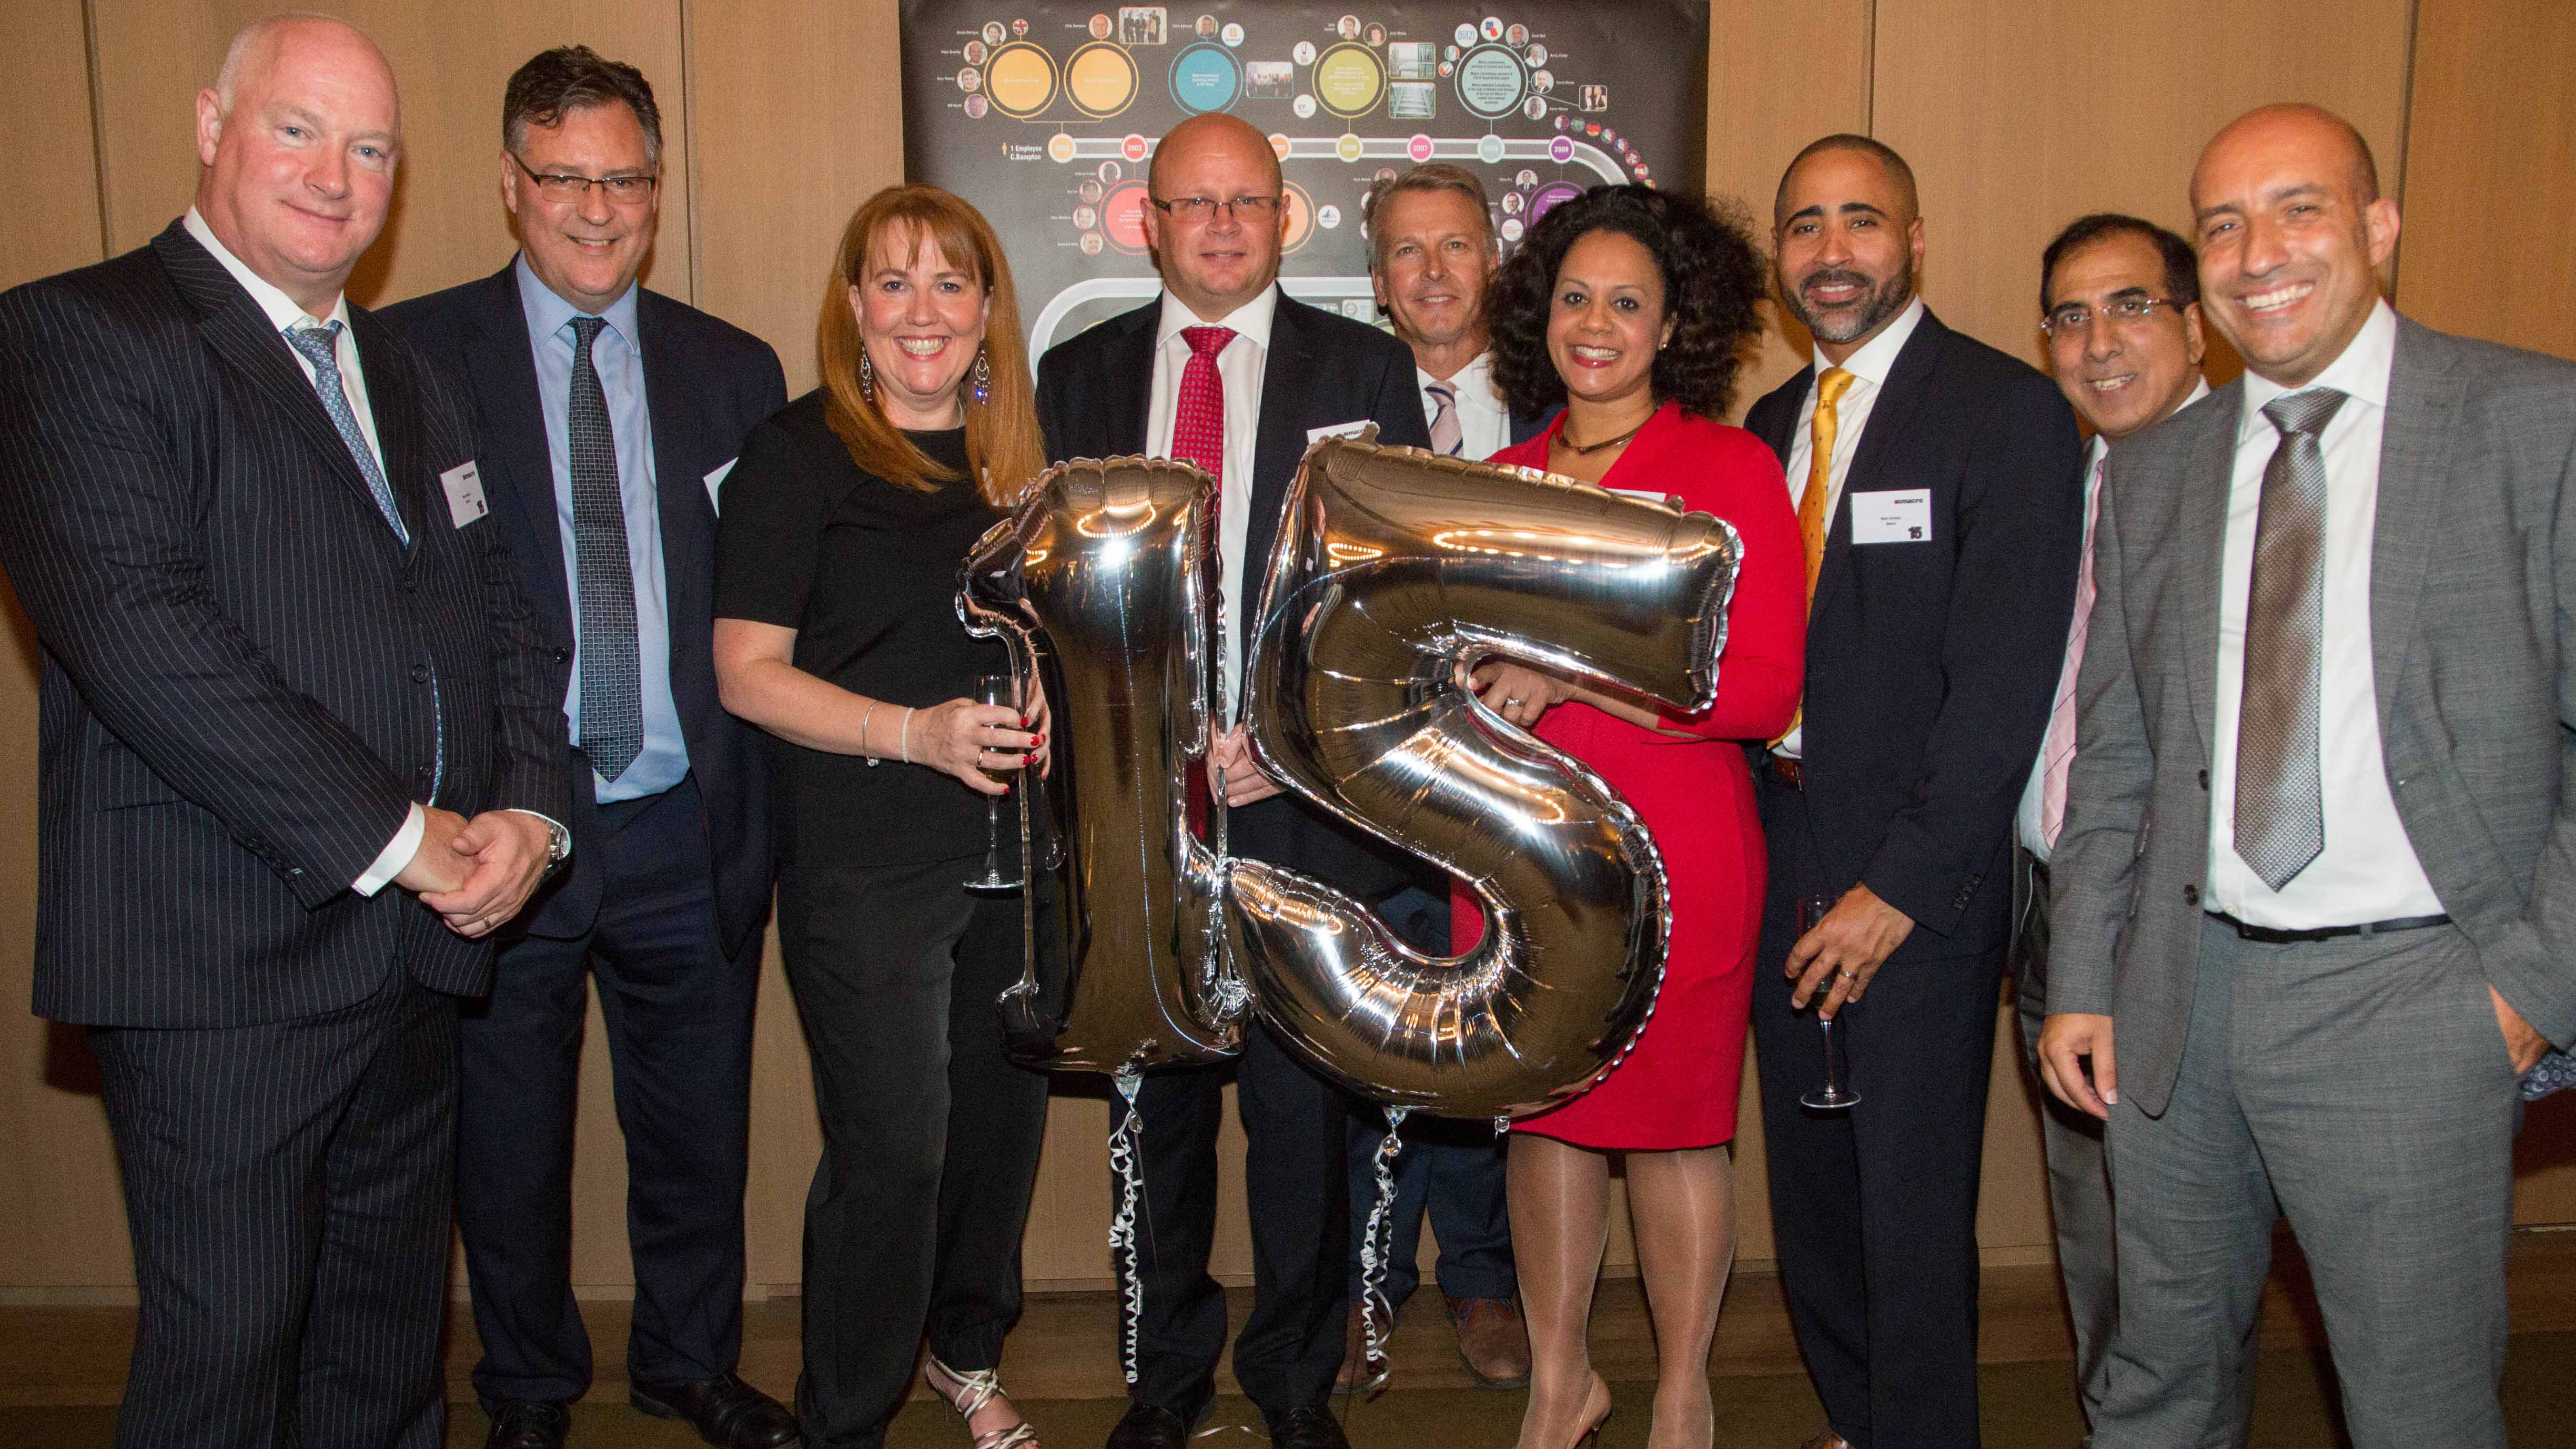 Mace People: Celebrating 15 Years of Success - Mace Group